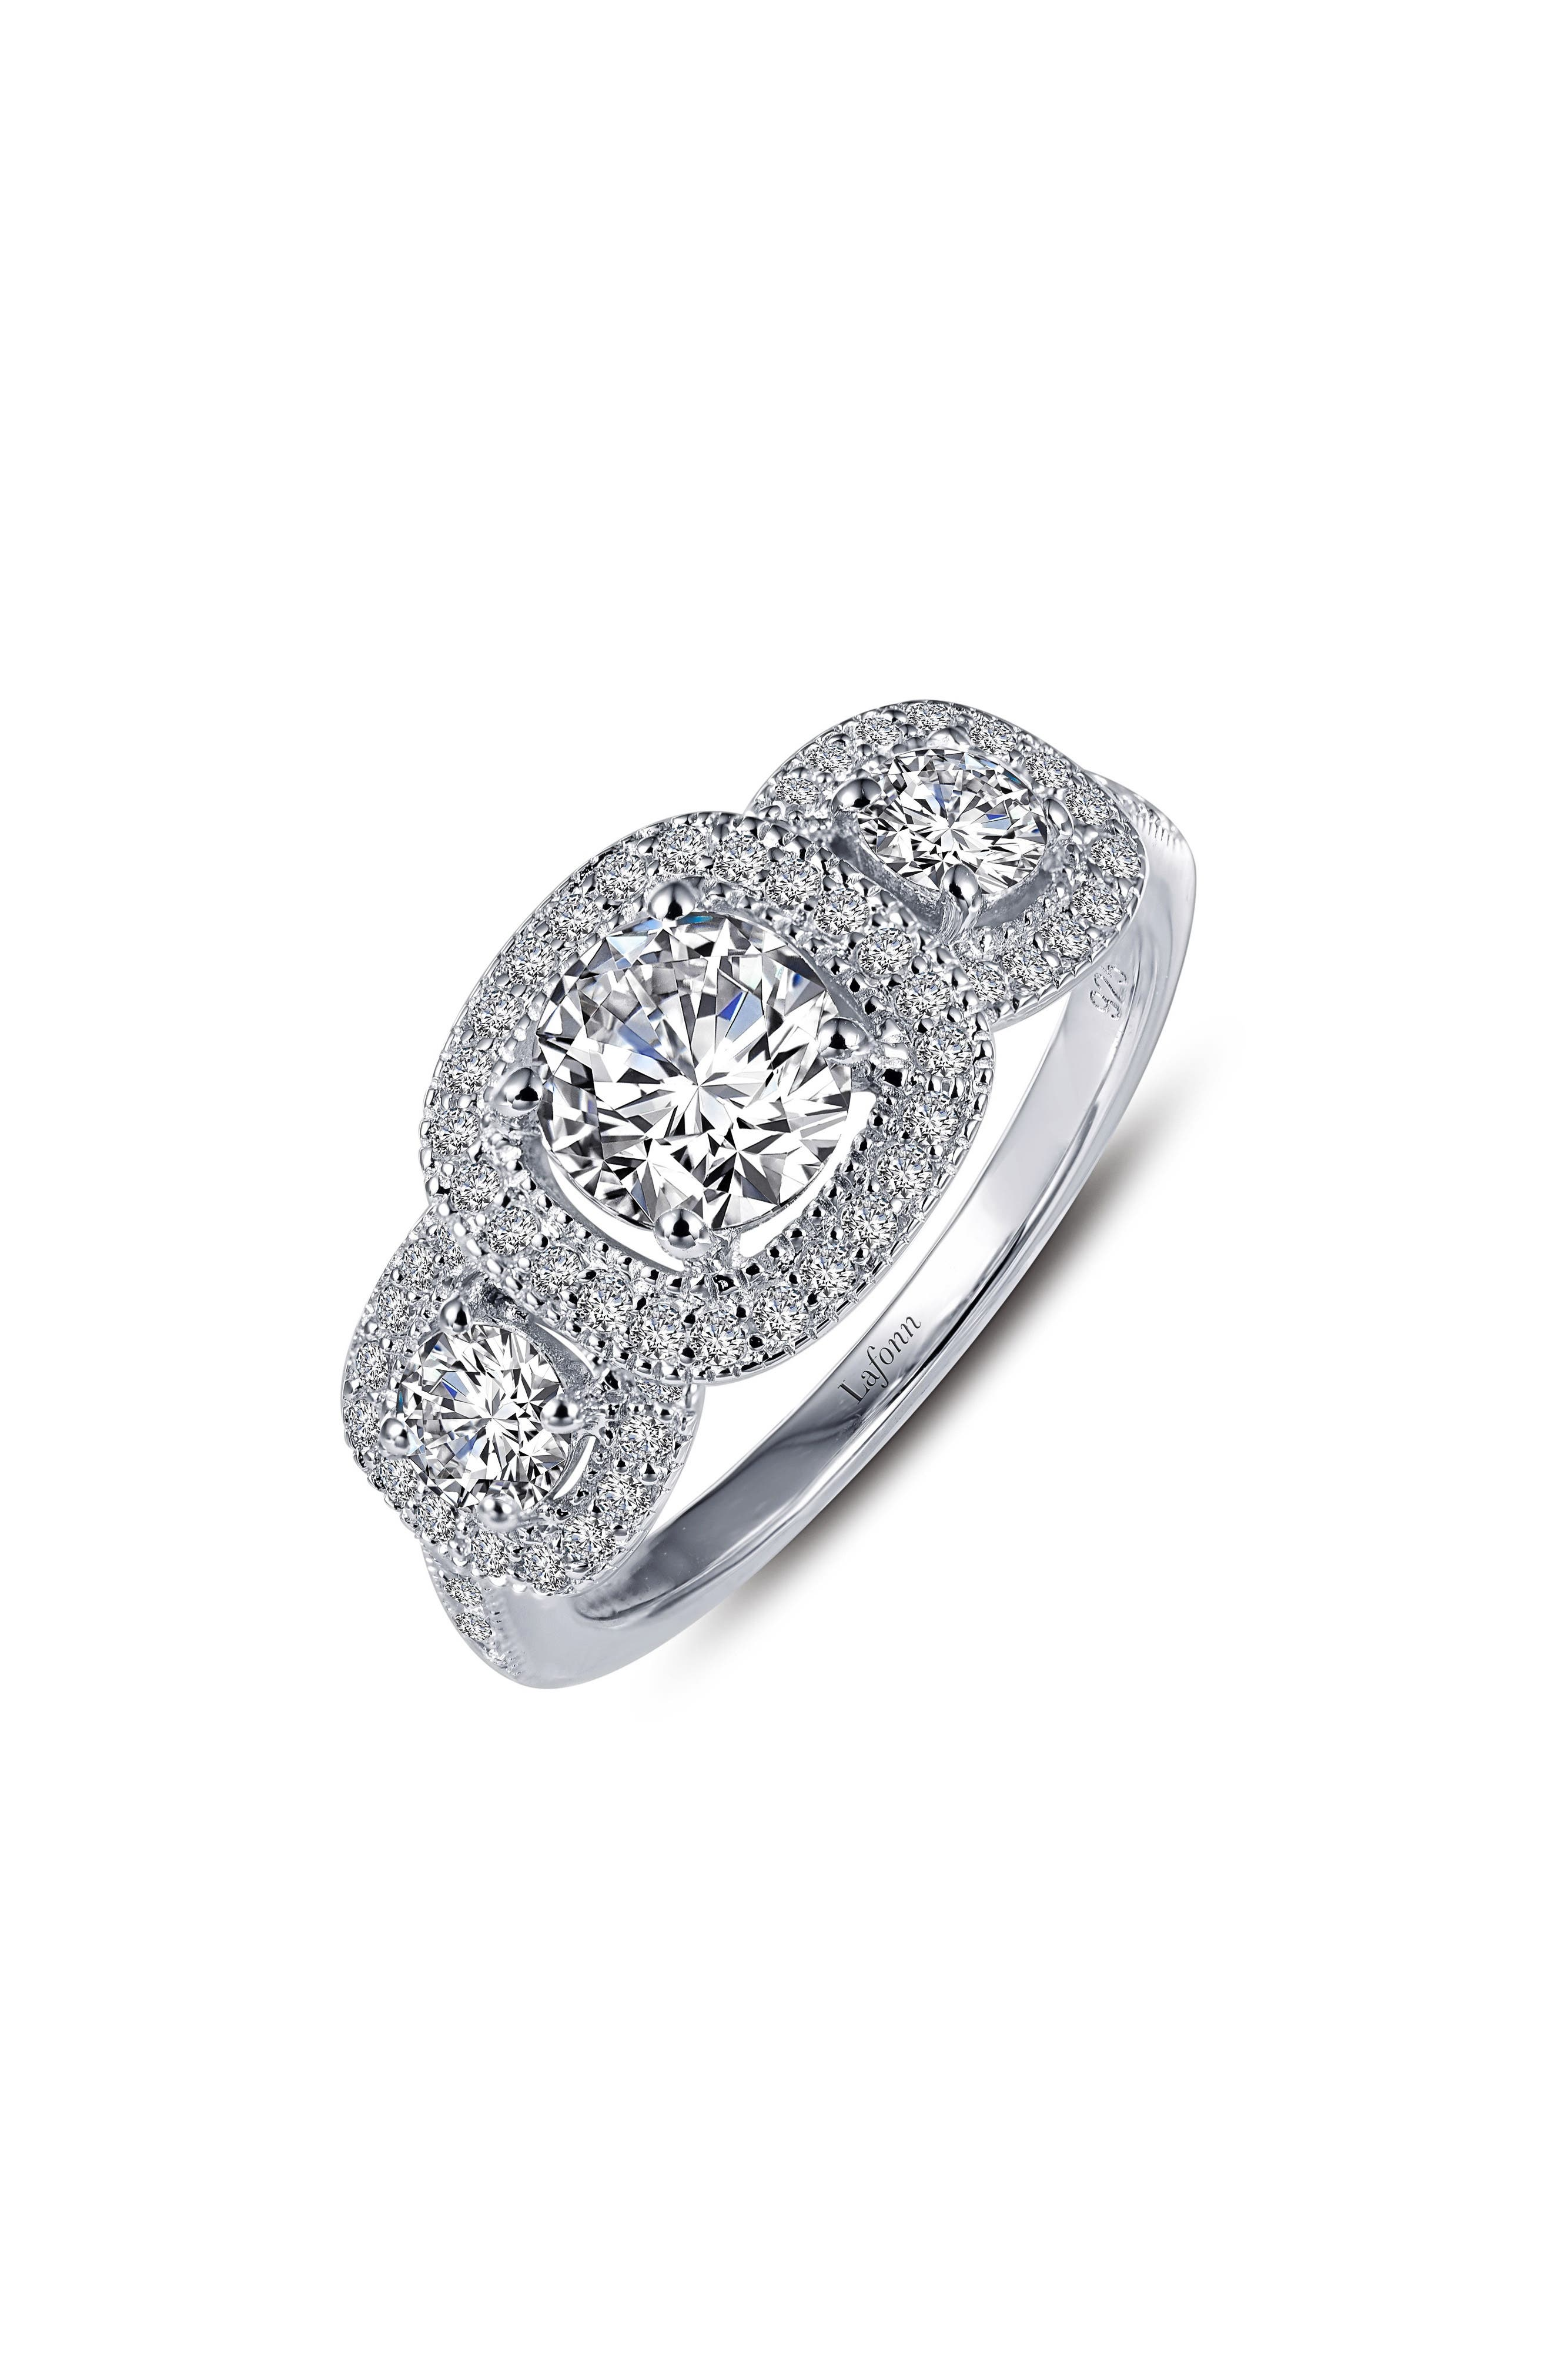 Simulated Diamond Ring,                         Main,                         color, Silver/ Clear